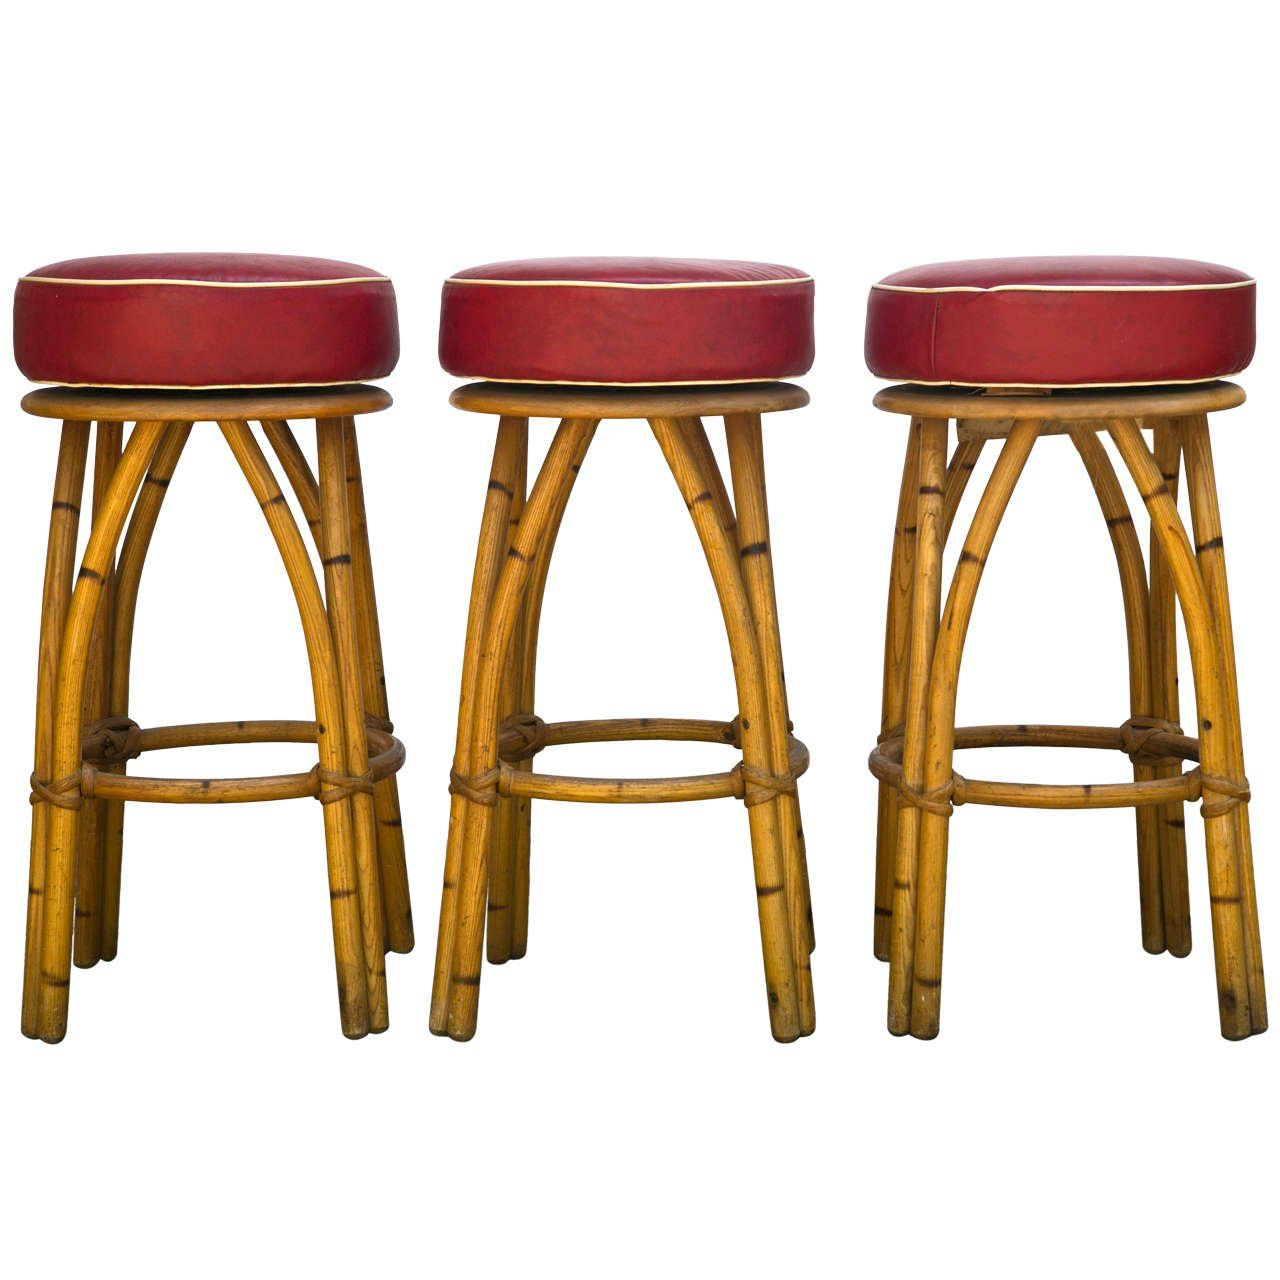 Kitchen Dining Rattan Bar Stools Legs With Red Cushion Seat